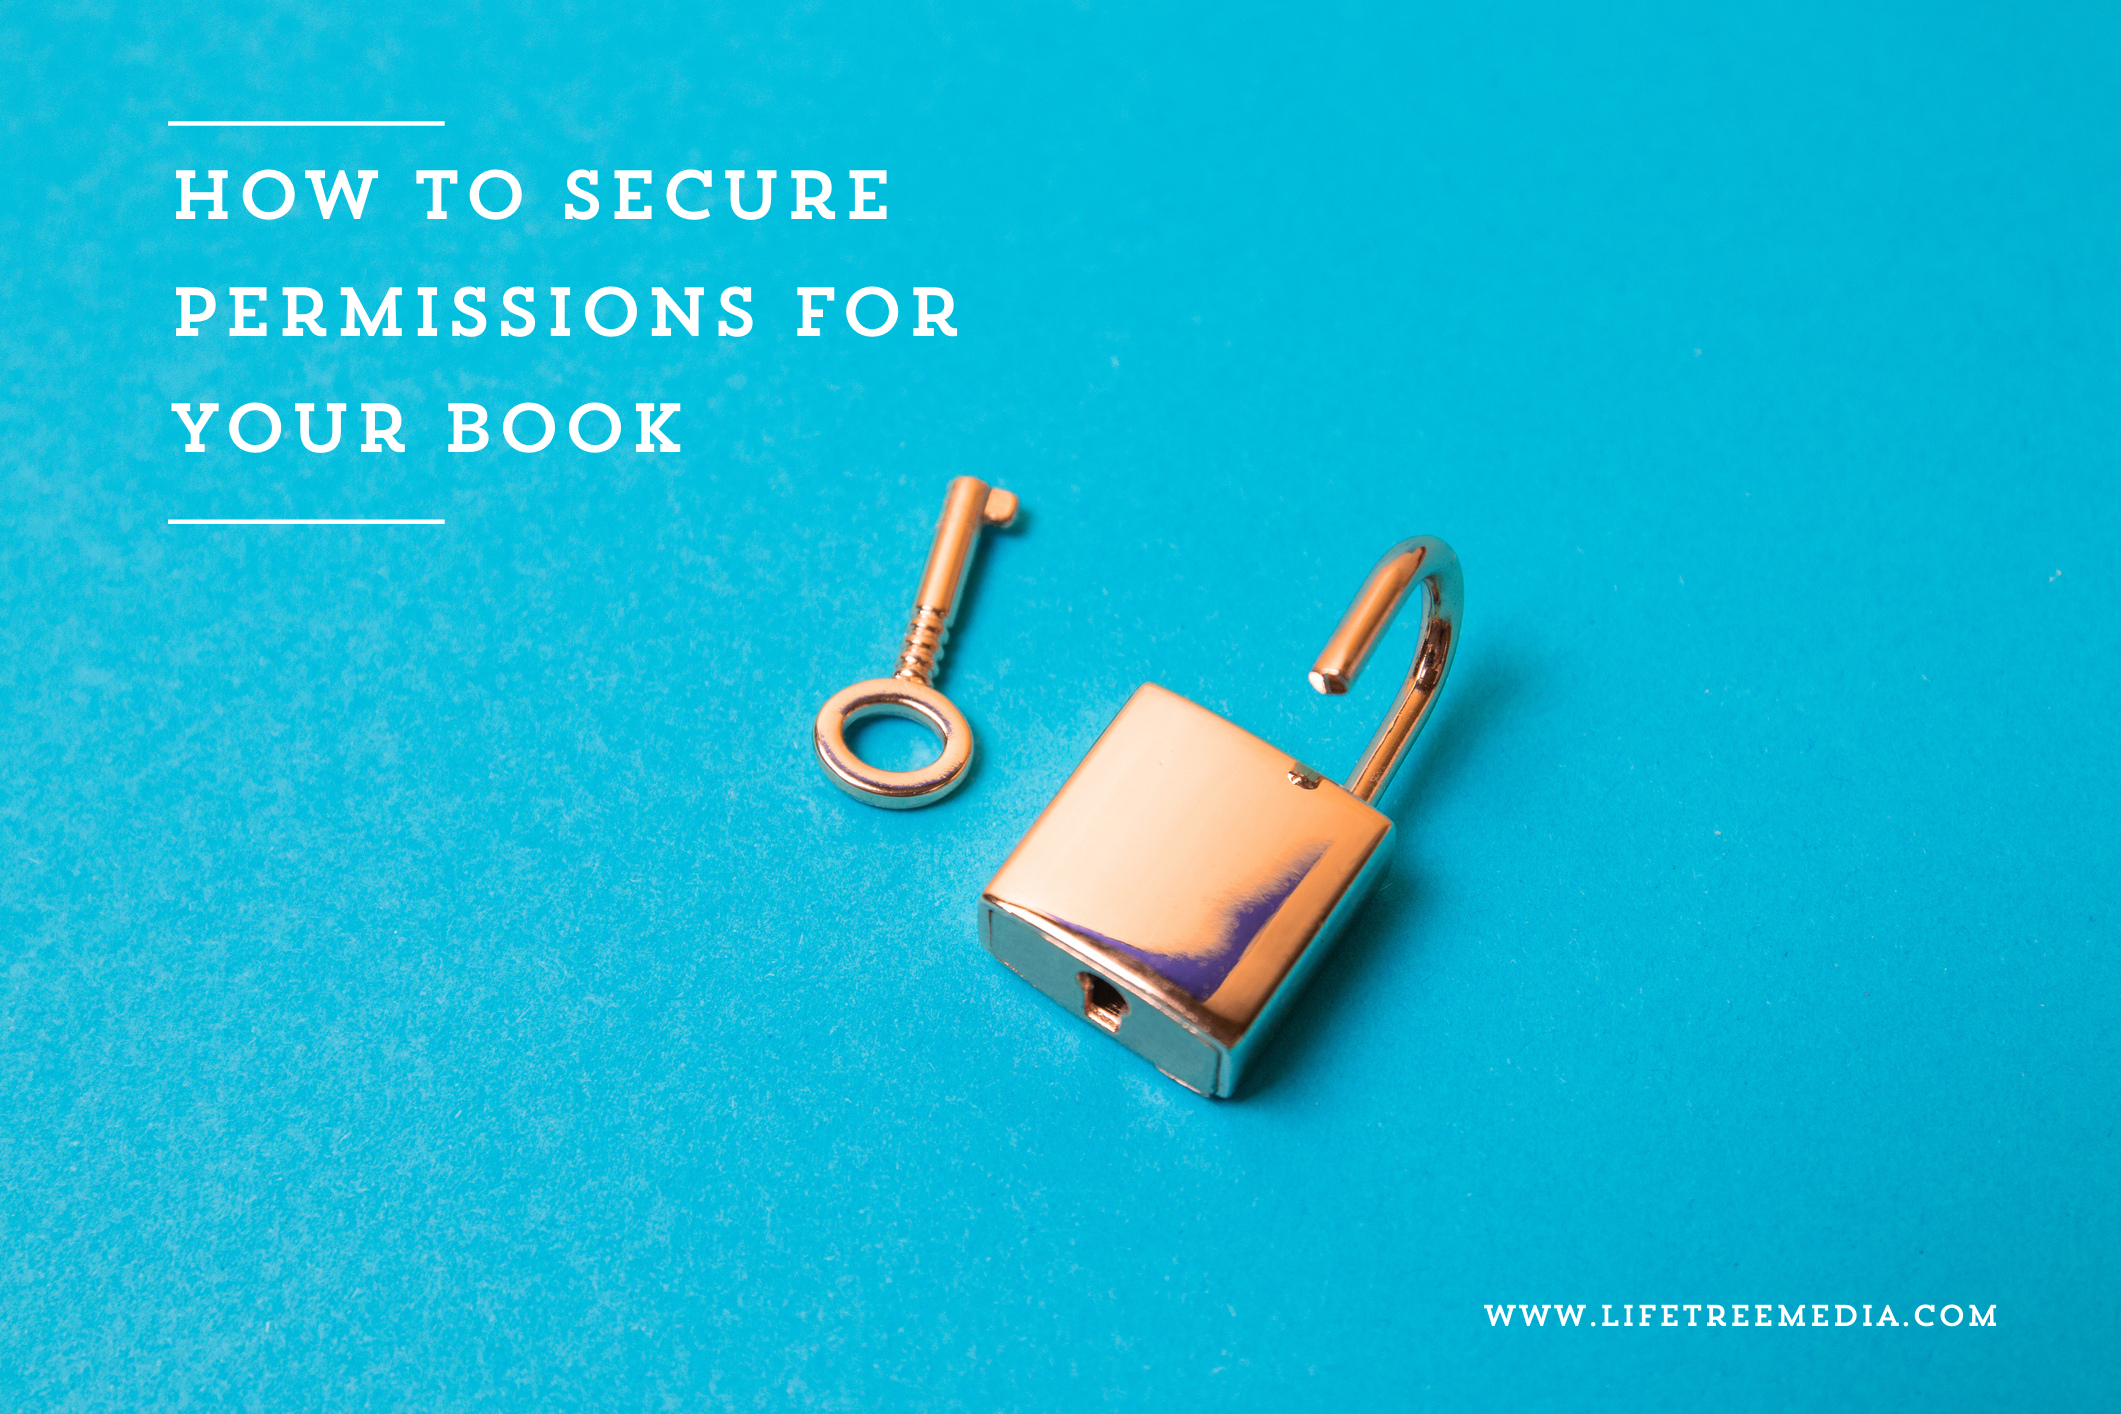 How to secure permissions for your book